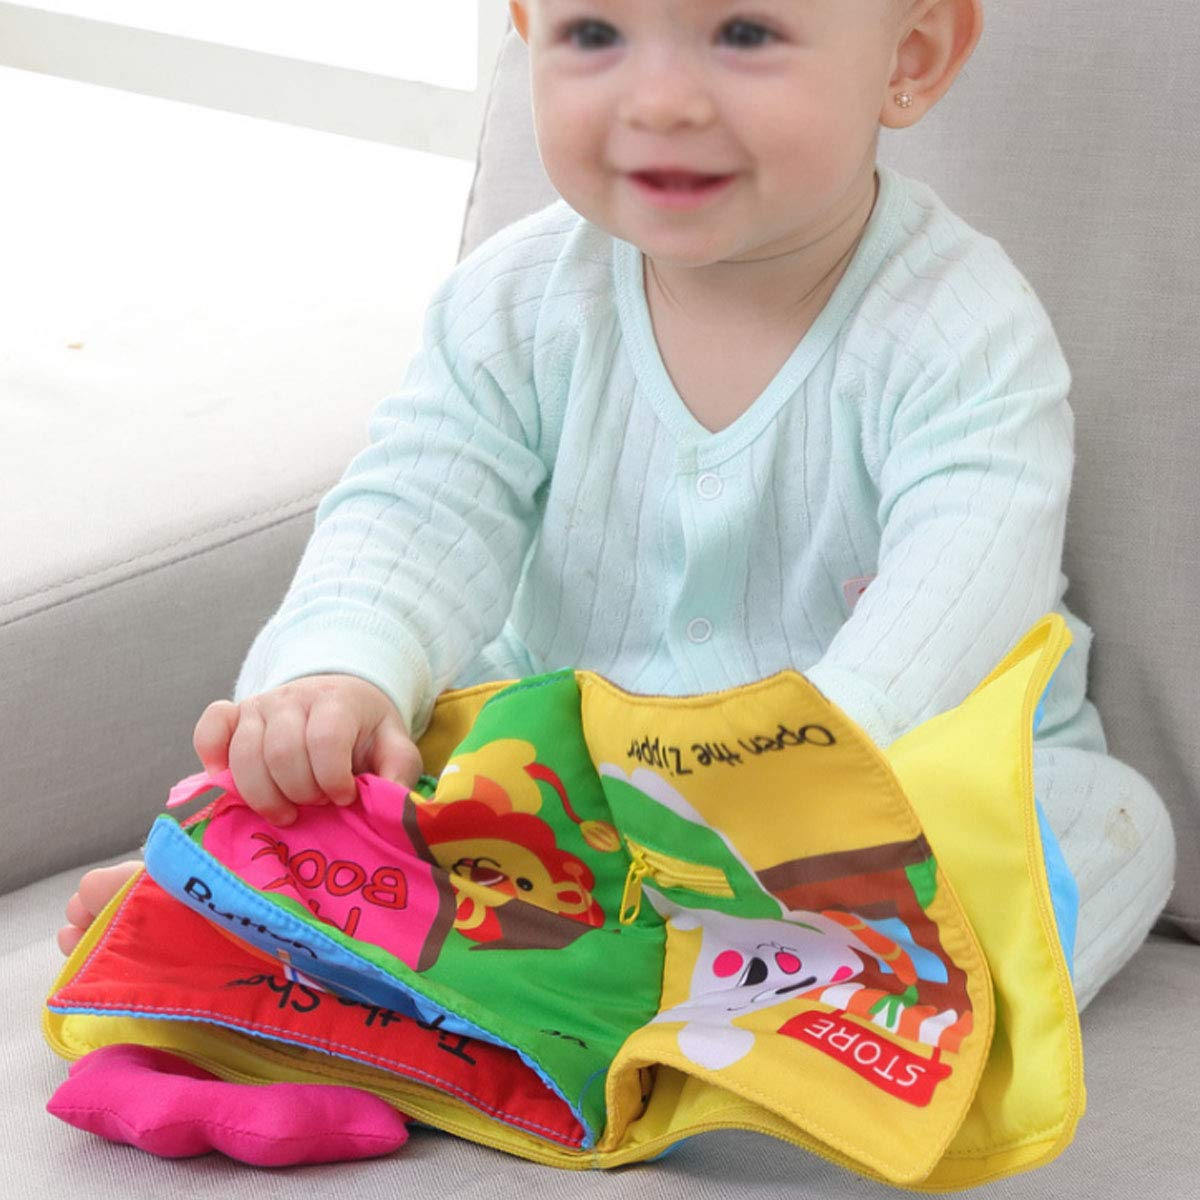 Buckle Zip Snap Lace /& Tie Millya Toddler Early Learning Basic Life Skills Learn to Dress Board Book Button